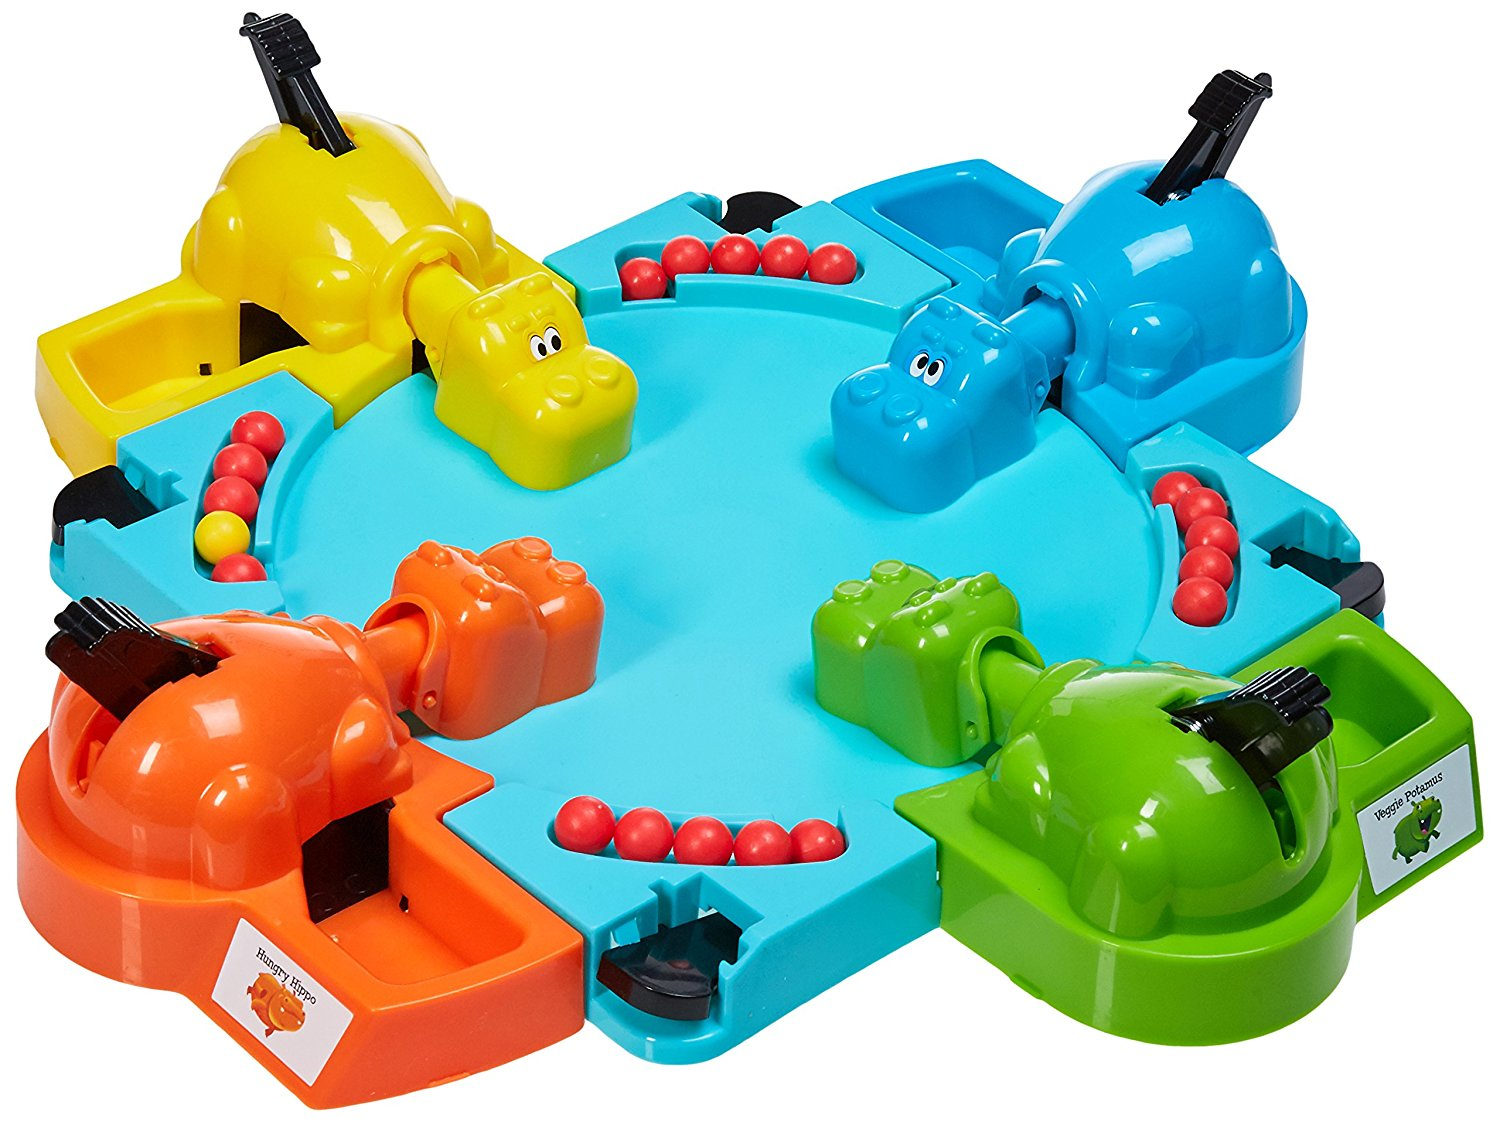 Hungry Hungry Hippos, Classic Hungry Hippos game has 4 hippo heads and bodies plus marbles... by